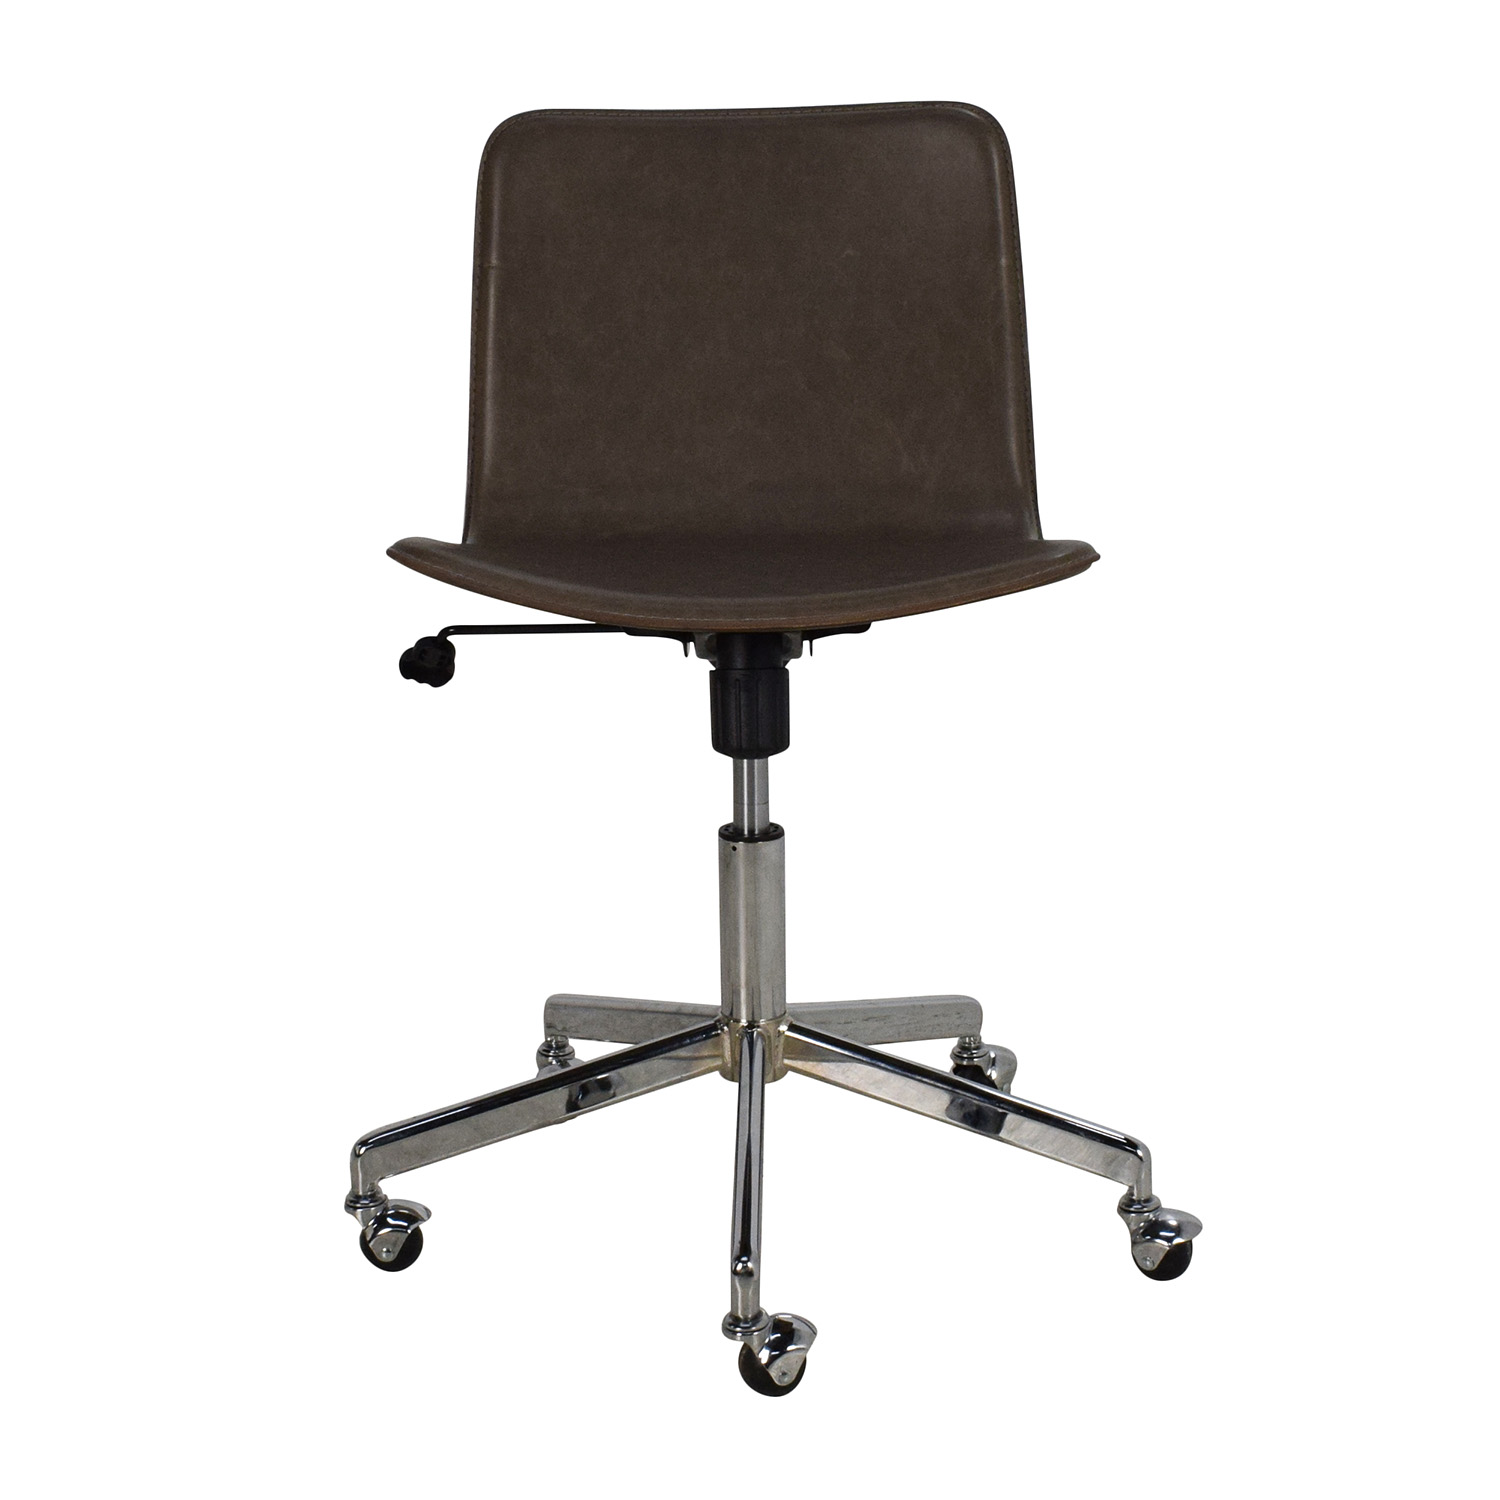 CB2 CB2 Stratum Office Chair Home Office Chairs